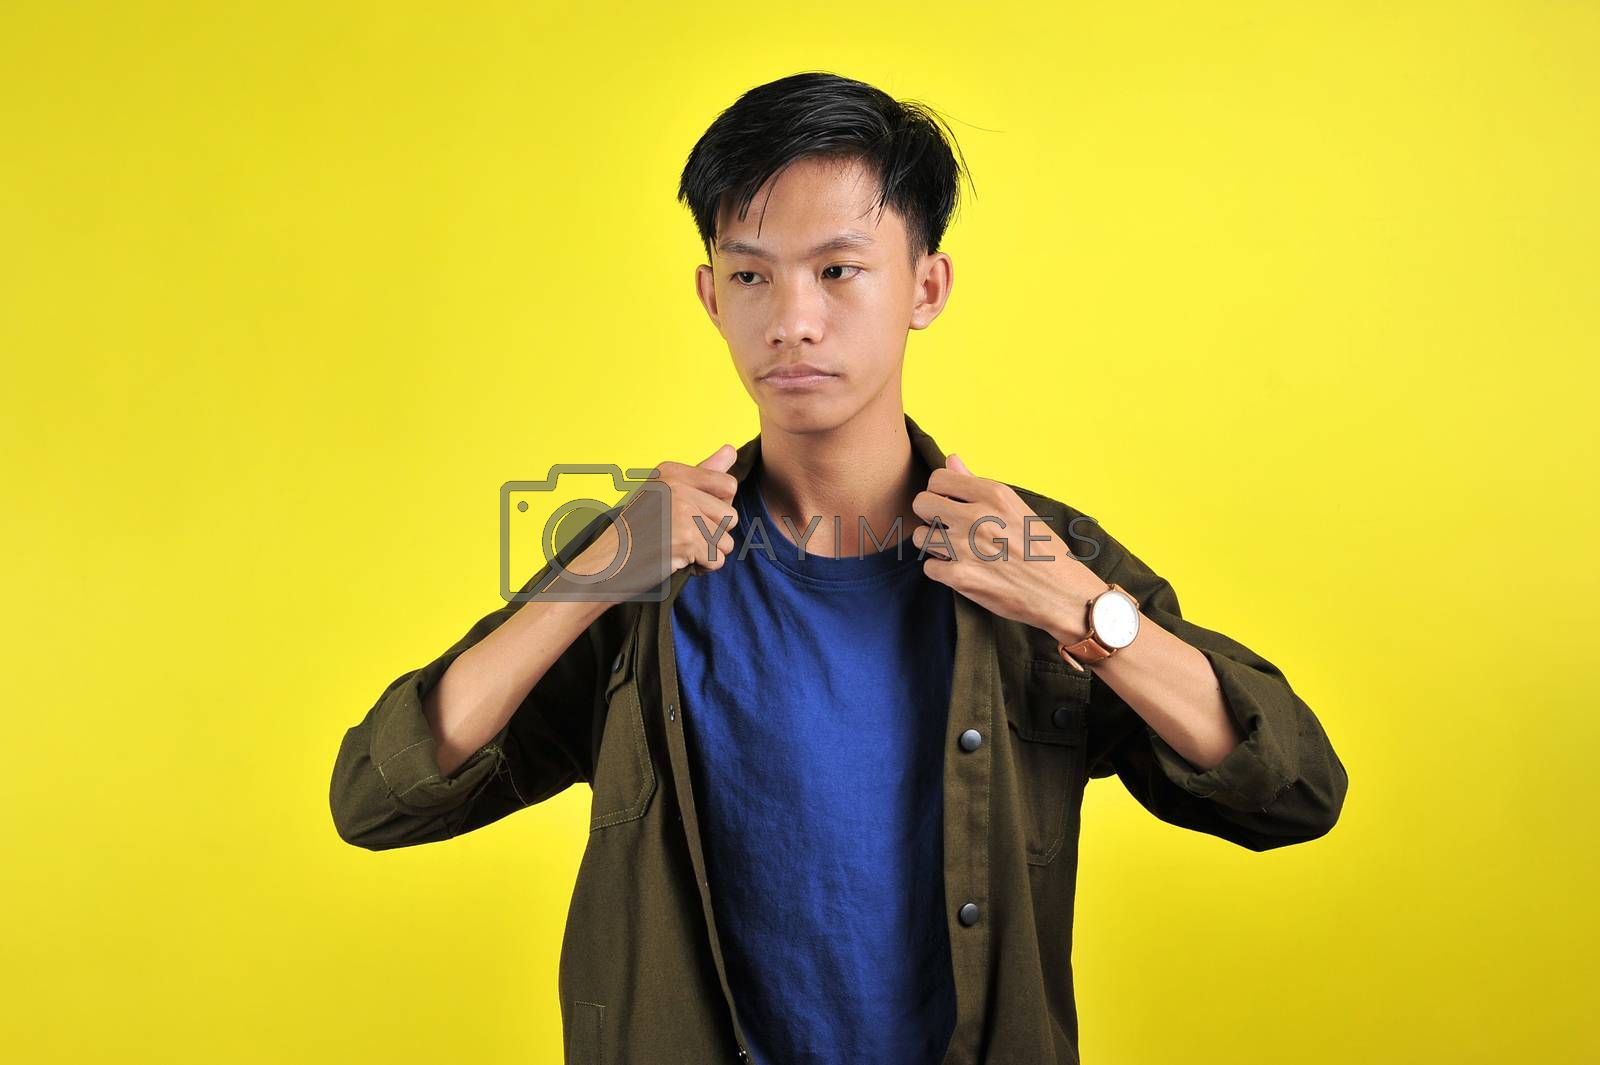 Portrait of young Asian man doing arrogant gesture, isolated on yellow background